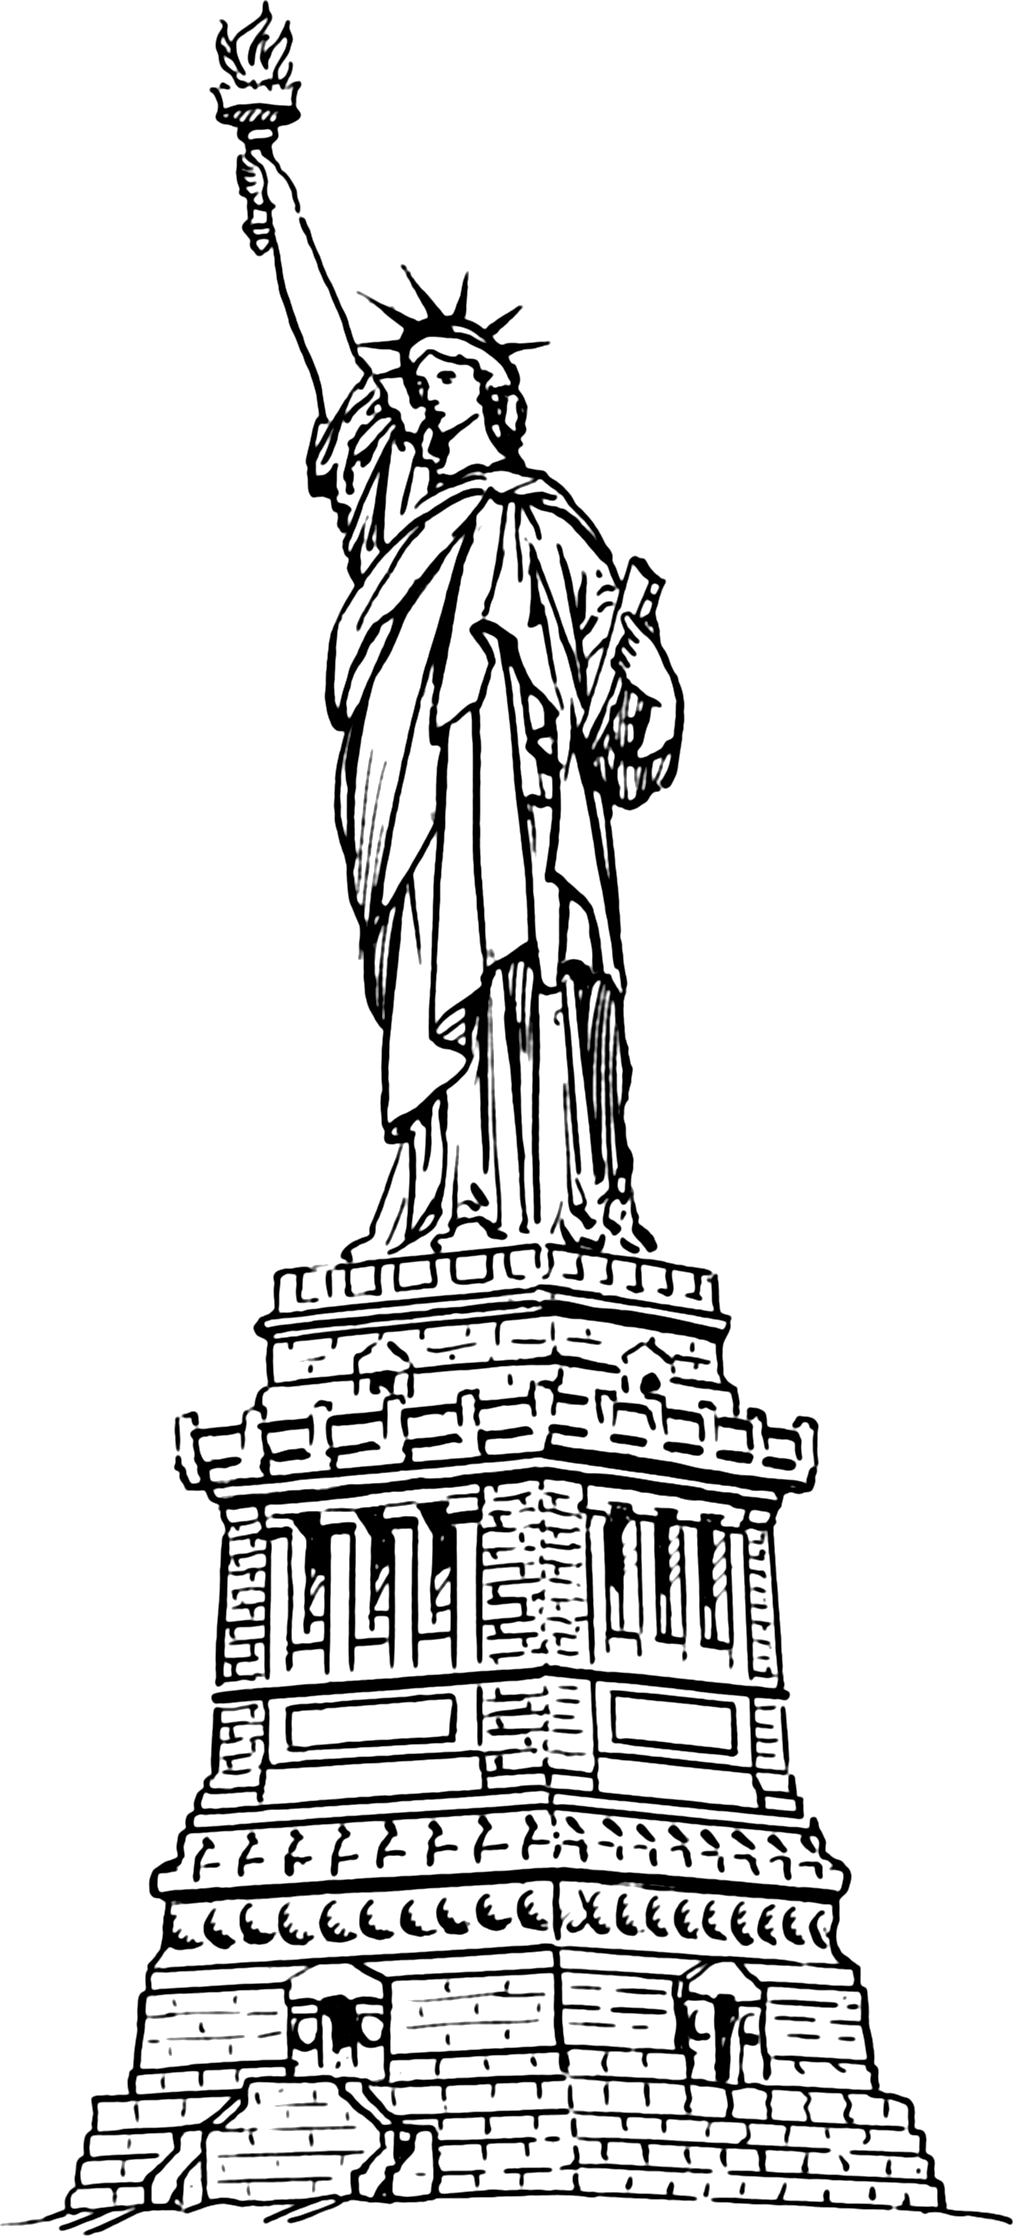 Clipart Statue Of Liberty - ClipArt Best